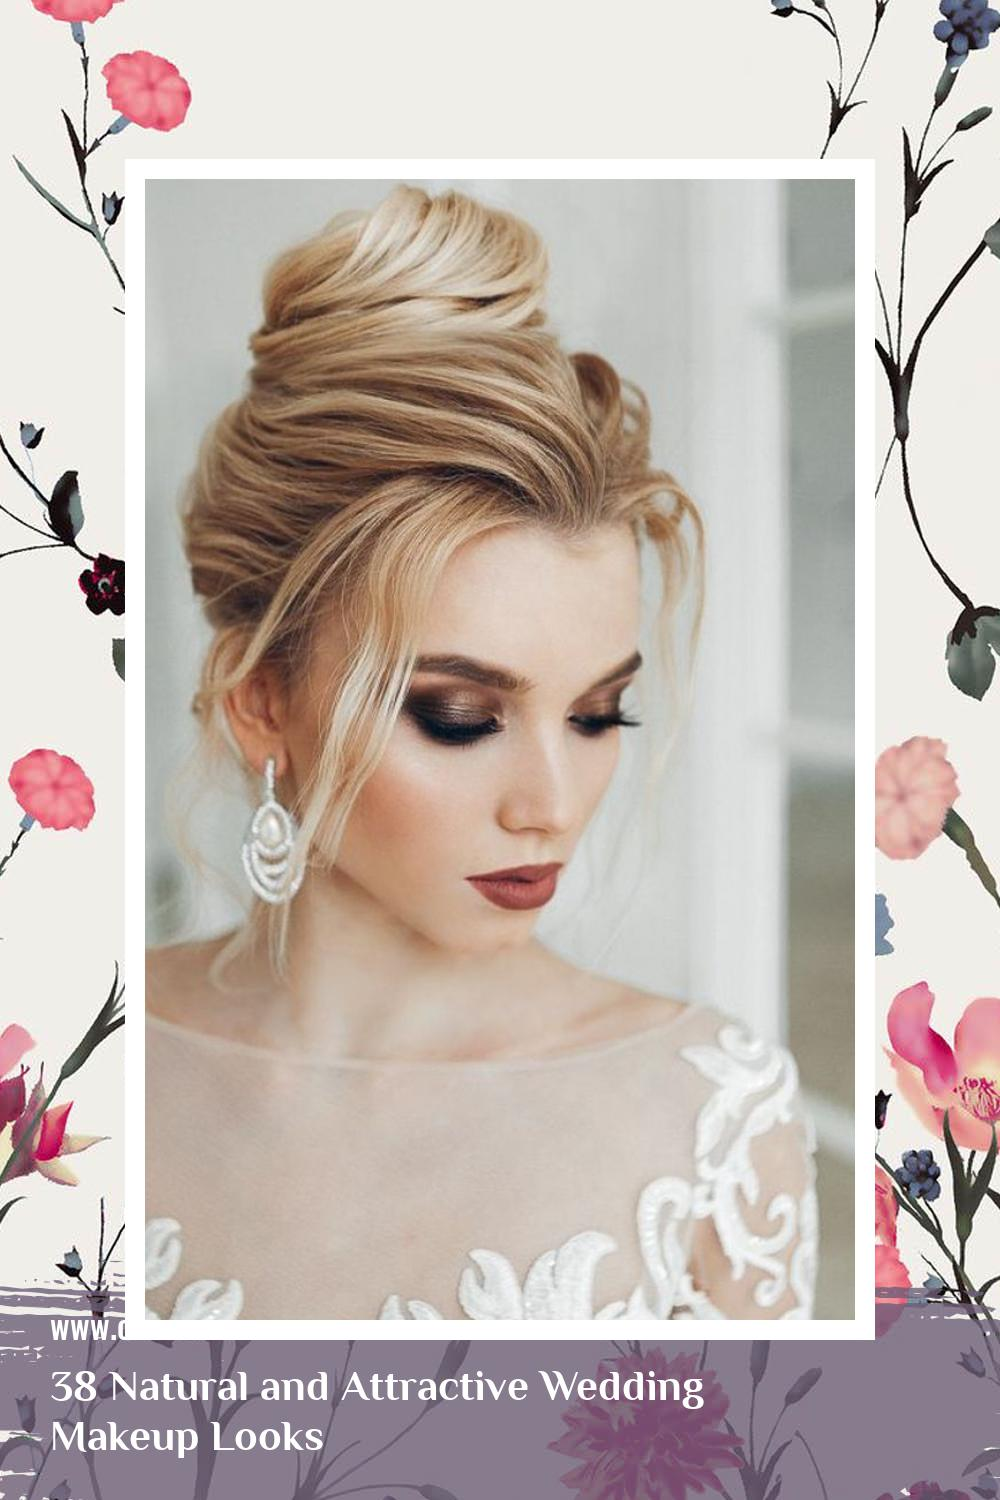 38 Natural and Attractive Wedding Makeup Looks 12